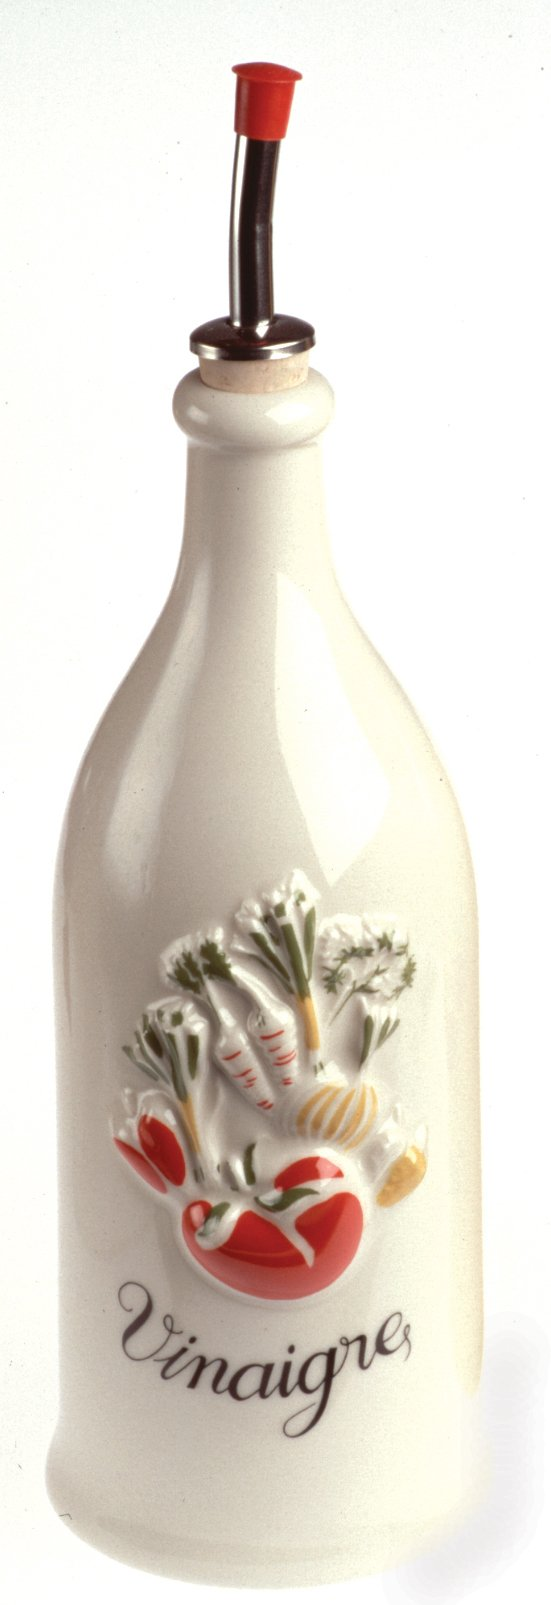 Revol 615766 P95 Vinegar Bottle, 9 x 2.5'', Creamy White by Revol